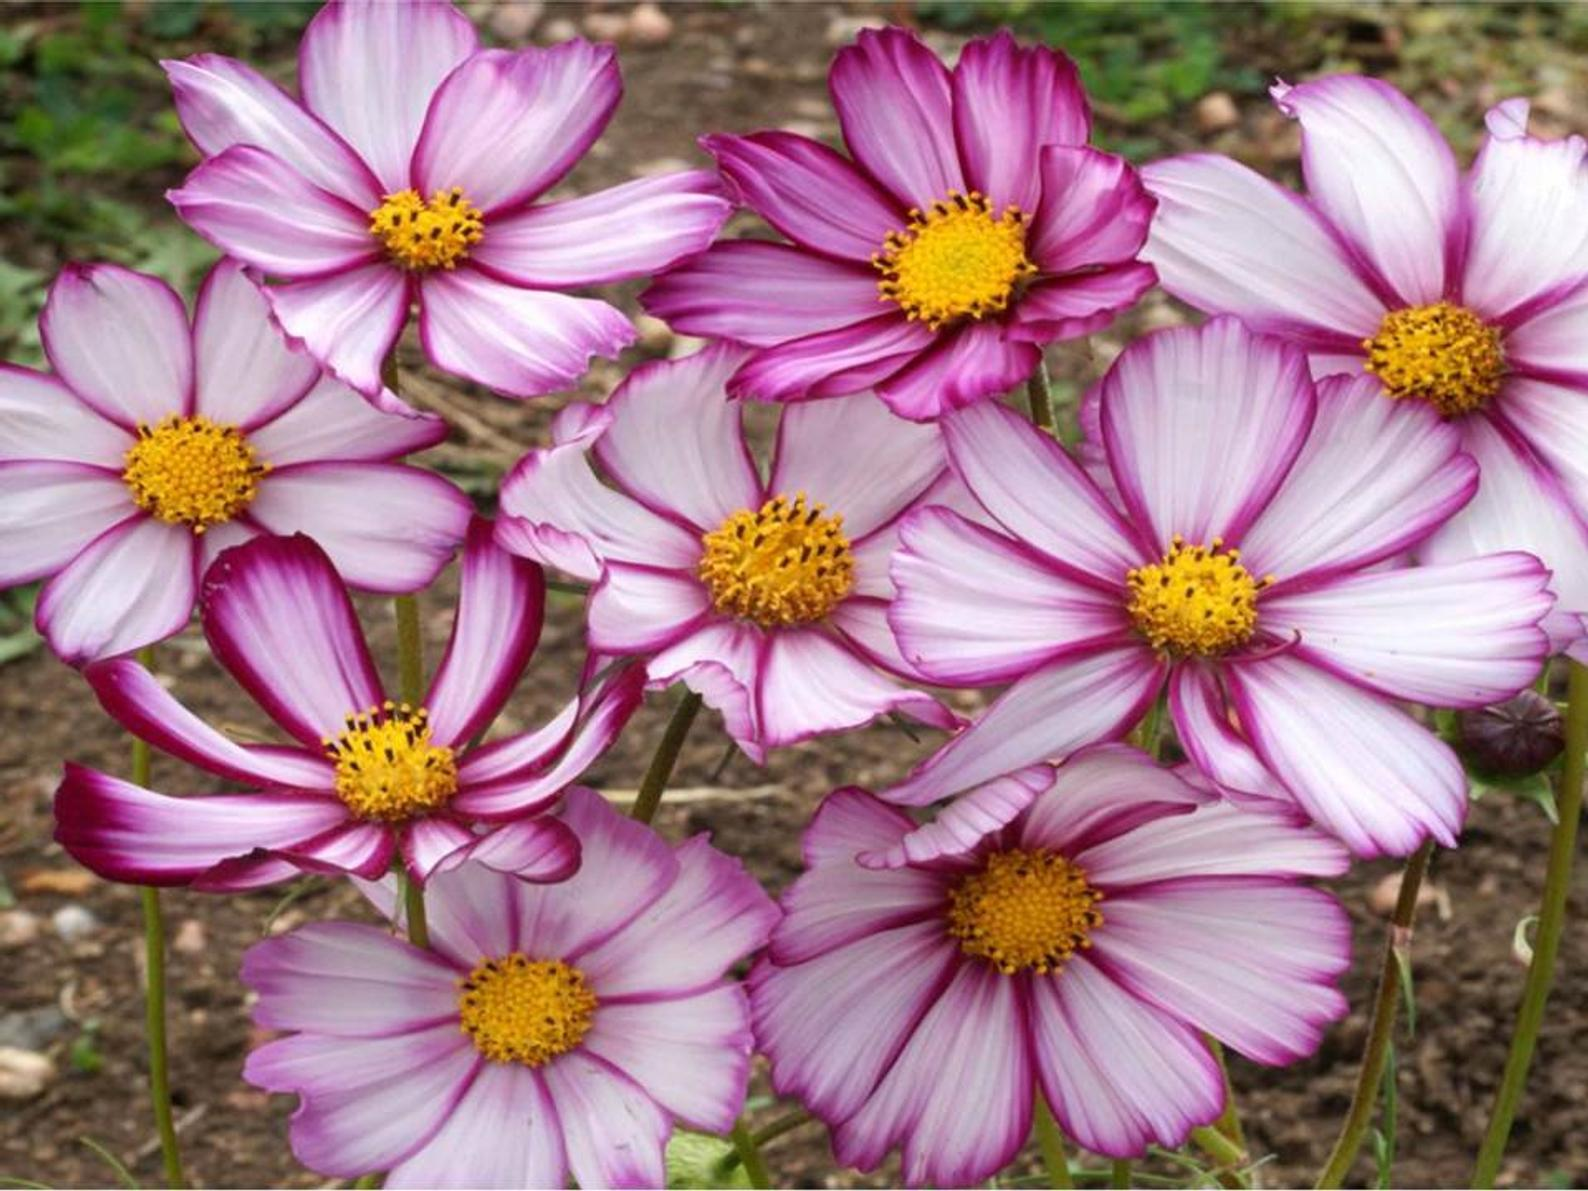 Beautiful cosmos picotee flowering with white petals and pinkish purple edges. Available for sale at Etsy - photo courtesy of seller, ZellajakeFarmGarden. https://tidd.ly/3z5hWPu